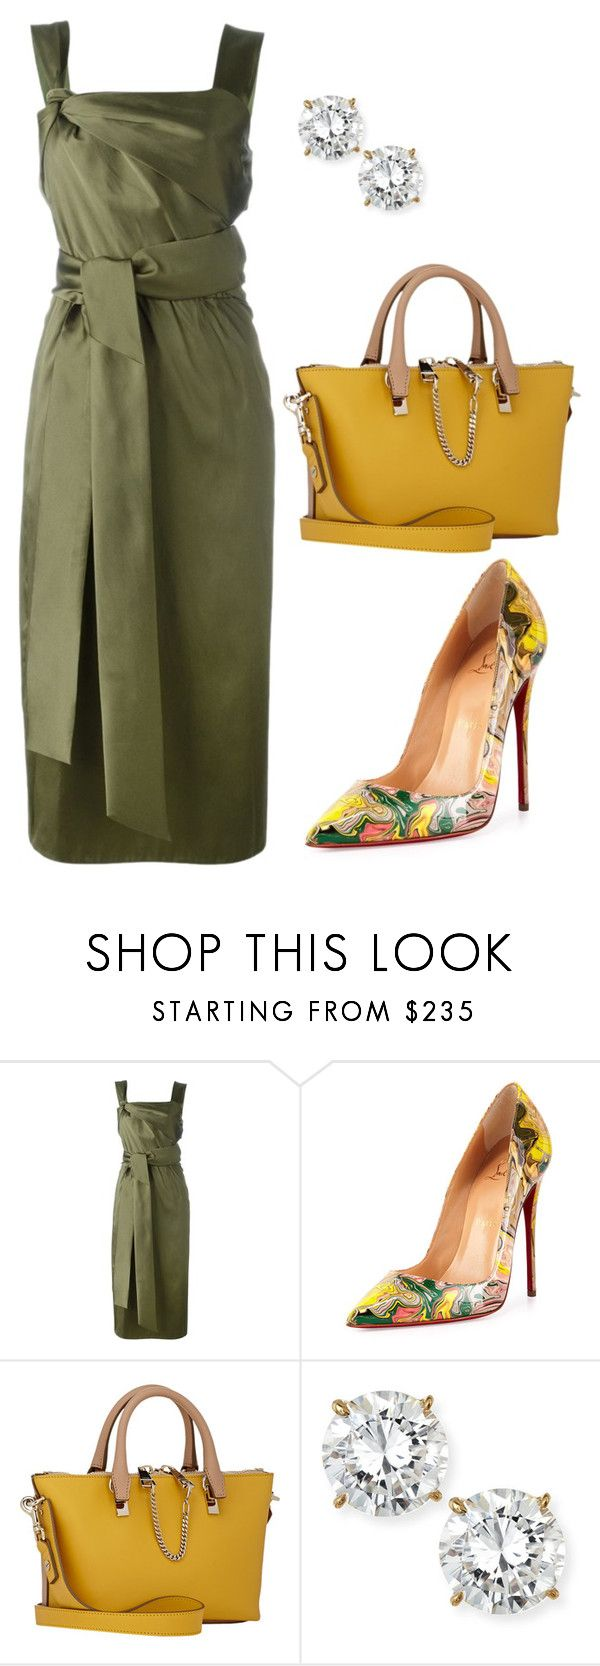 """style theory by Helia"" by heliaamado on Polyvore featuring moda, 3.1 Phillip Lim, Christian Louboutin, Chloé e Fantasia by DeSerio"